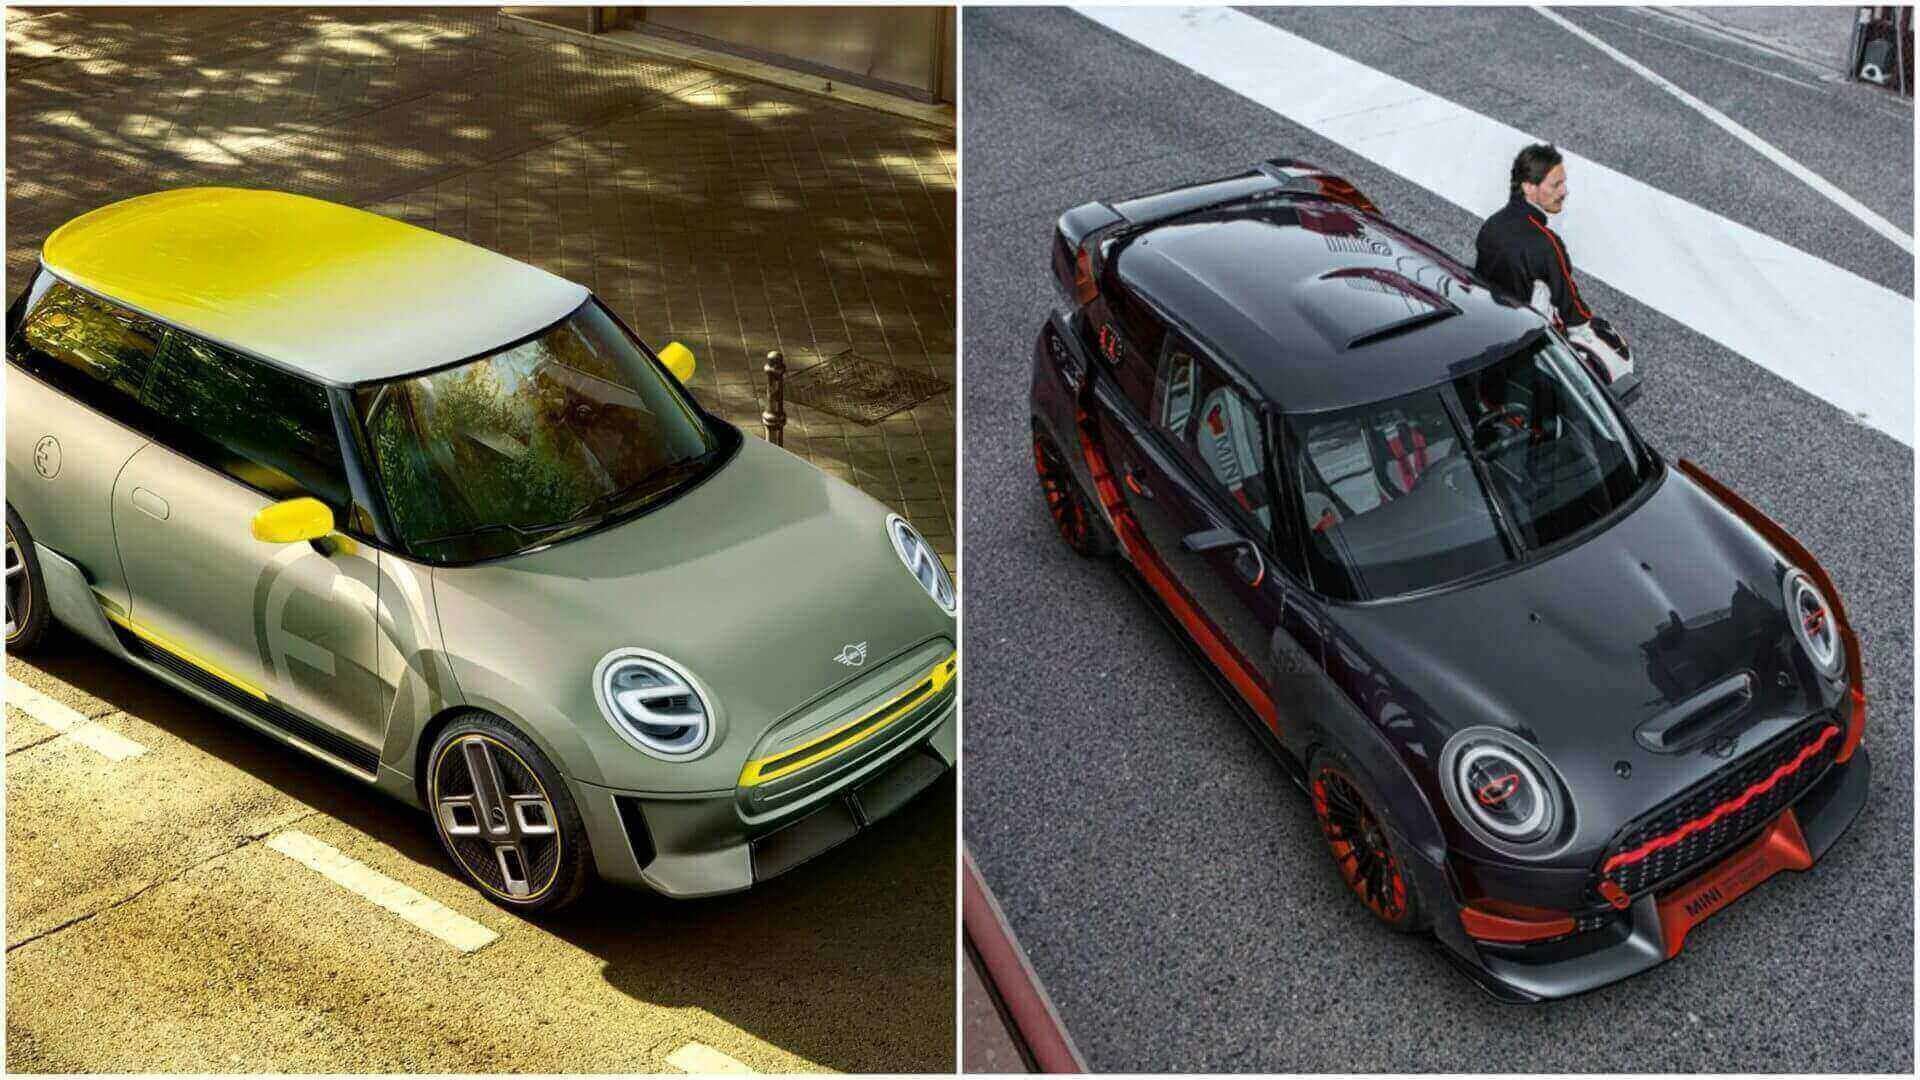 Latest Bmw To Show Mini Concept Models With 3D Printed Parts All3Dp Free Download